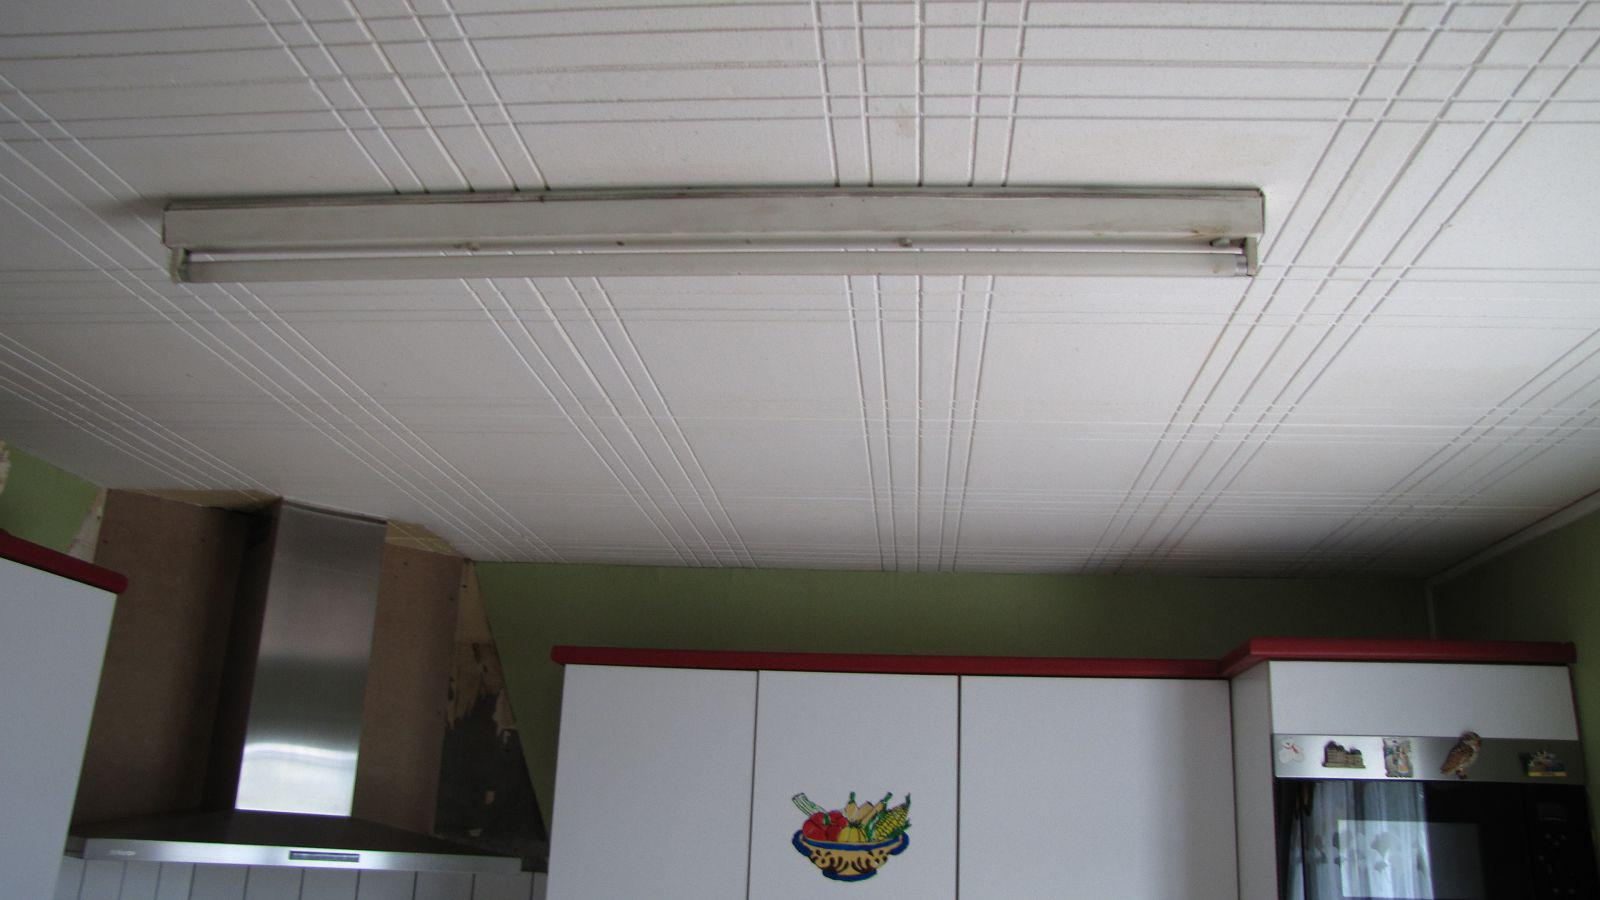 Comment r aliser un faux plafond fashion designs - Comment faire un faux plafond avec spot ...